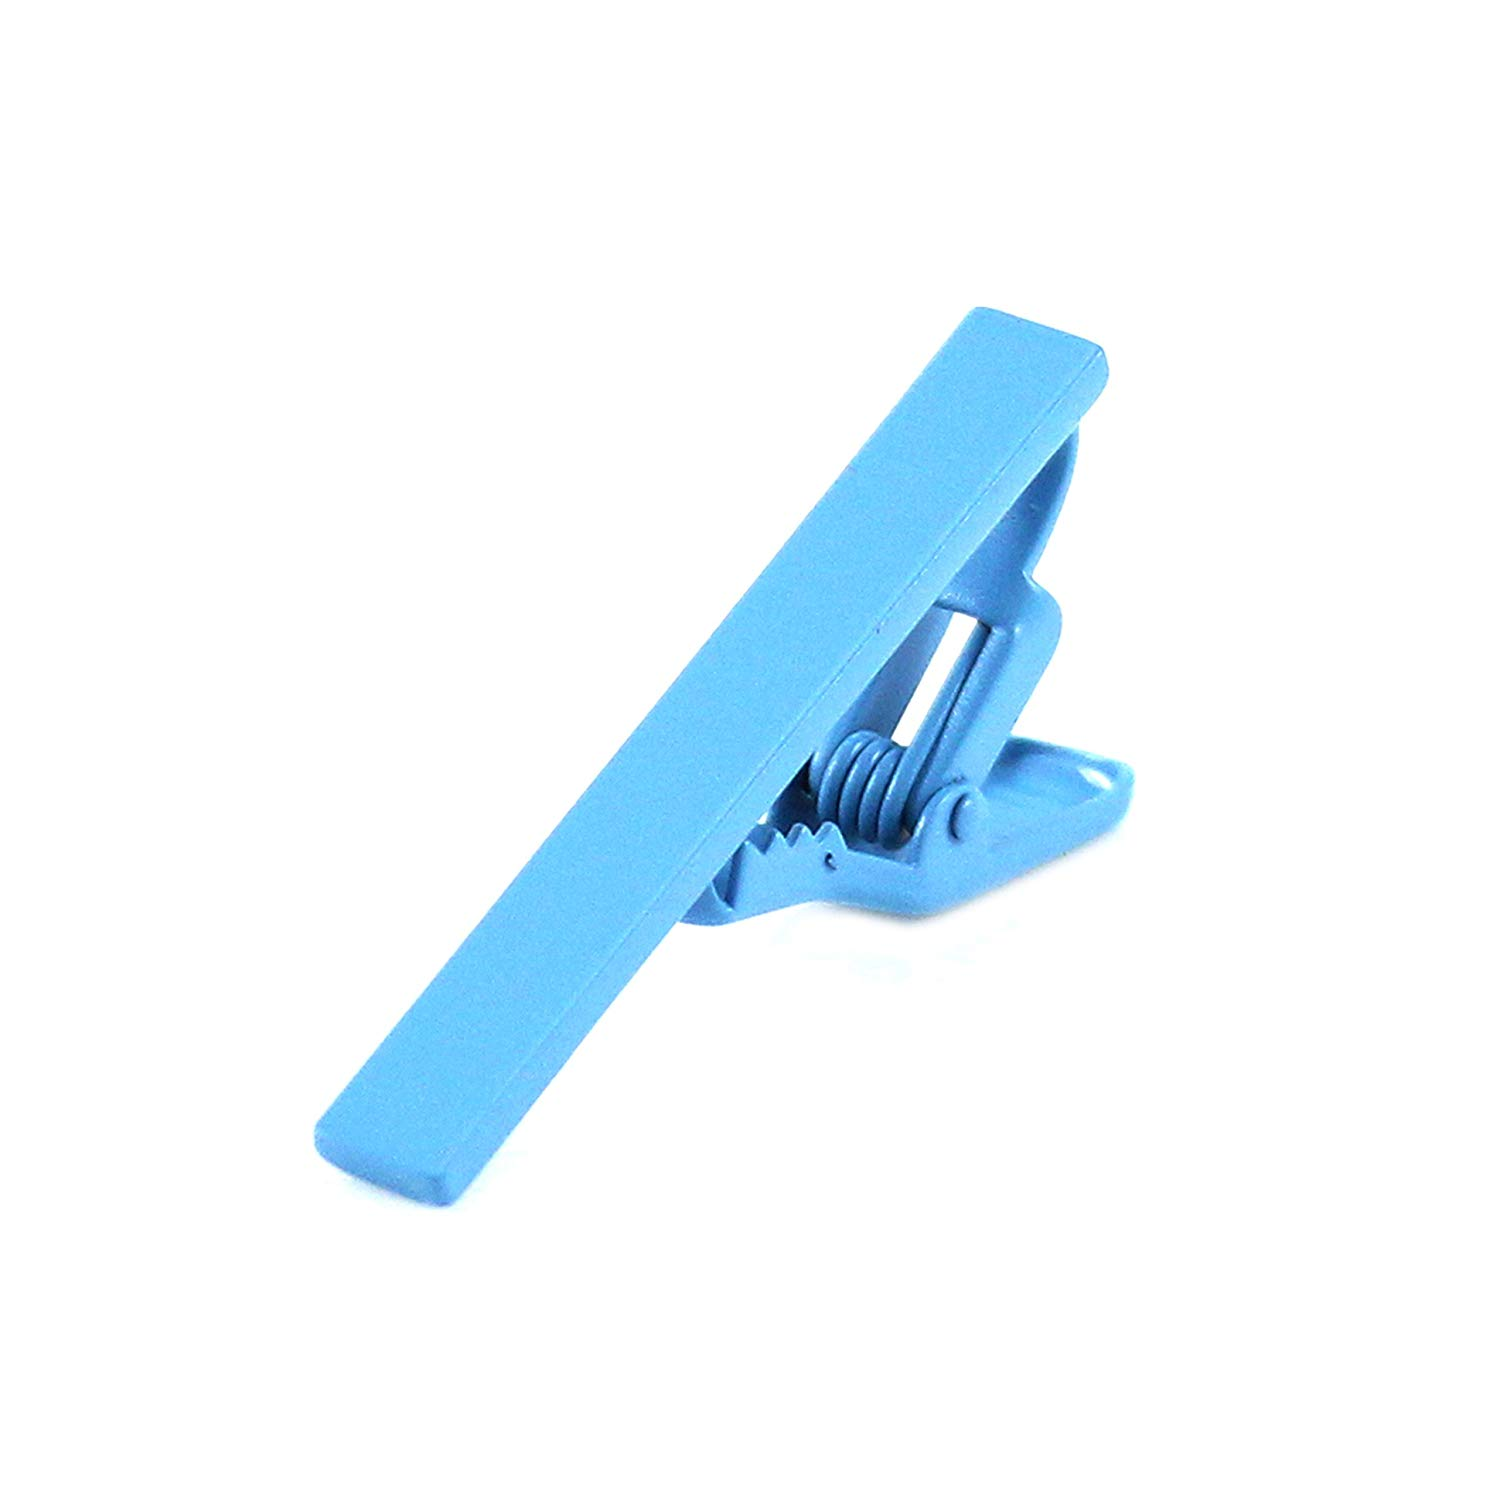 MENDEPOT Fashion Matte Sky Blue Slim Tie Clip With Gift Box